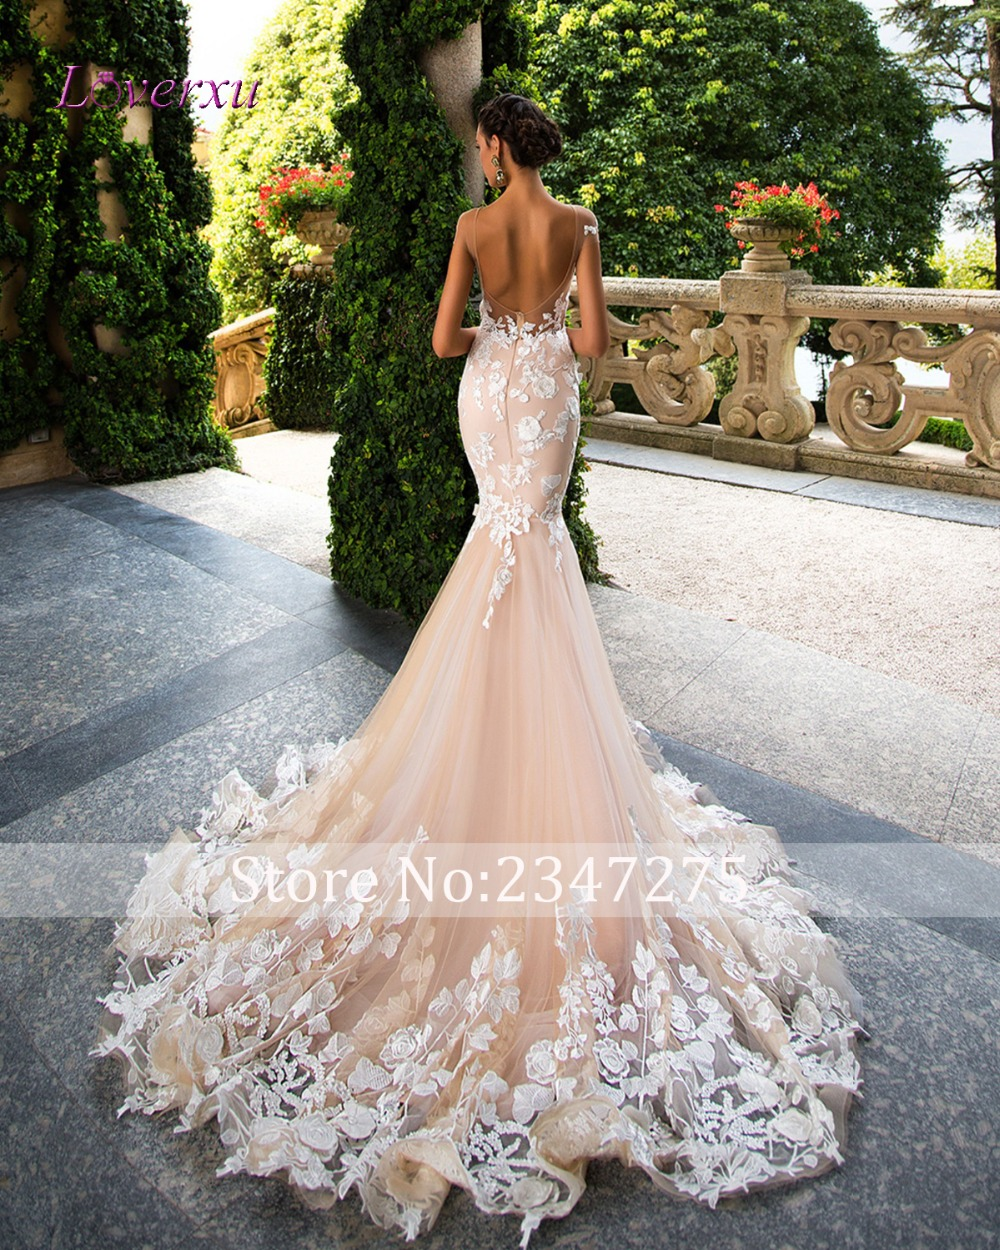 Loverxu Romantic Scoop Neck Backless Princess Mermaid Wedding Dress 2017 Gorgeous Appliques Robe De Mariage Bride Gown Plus Size